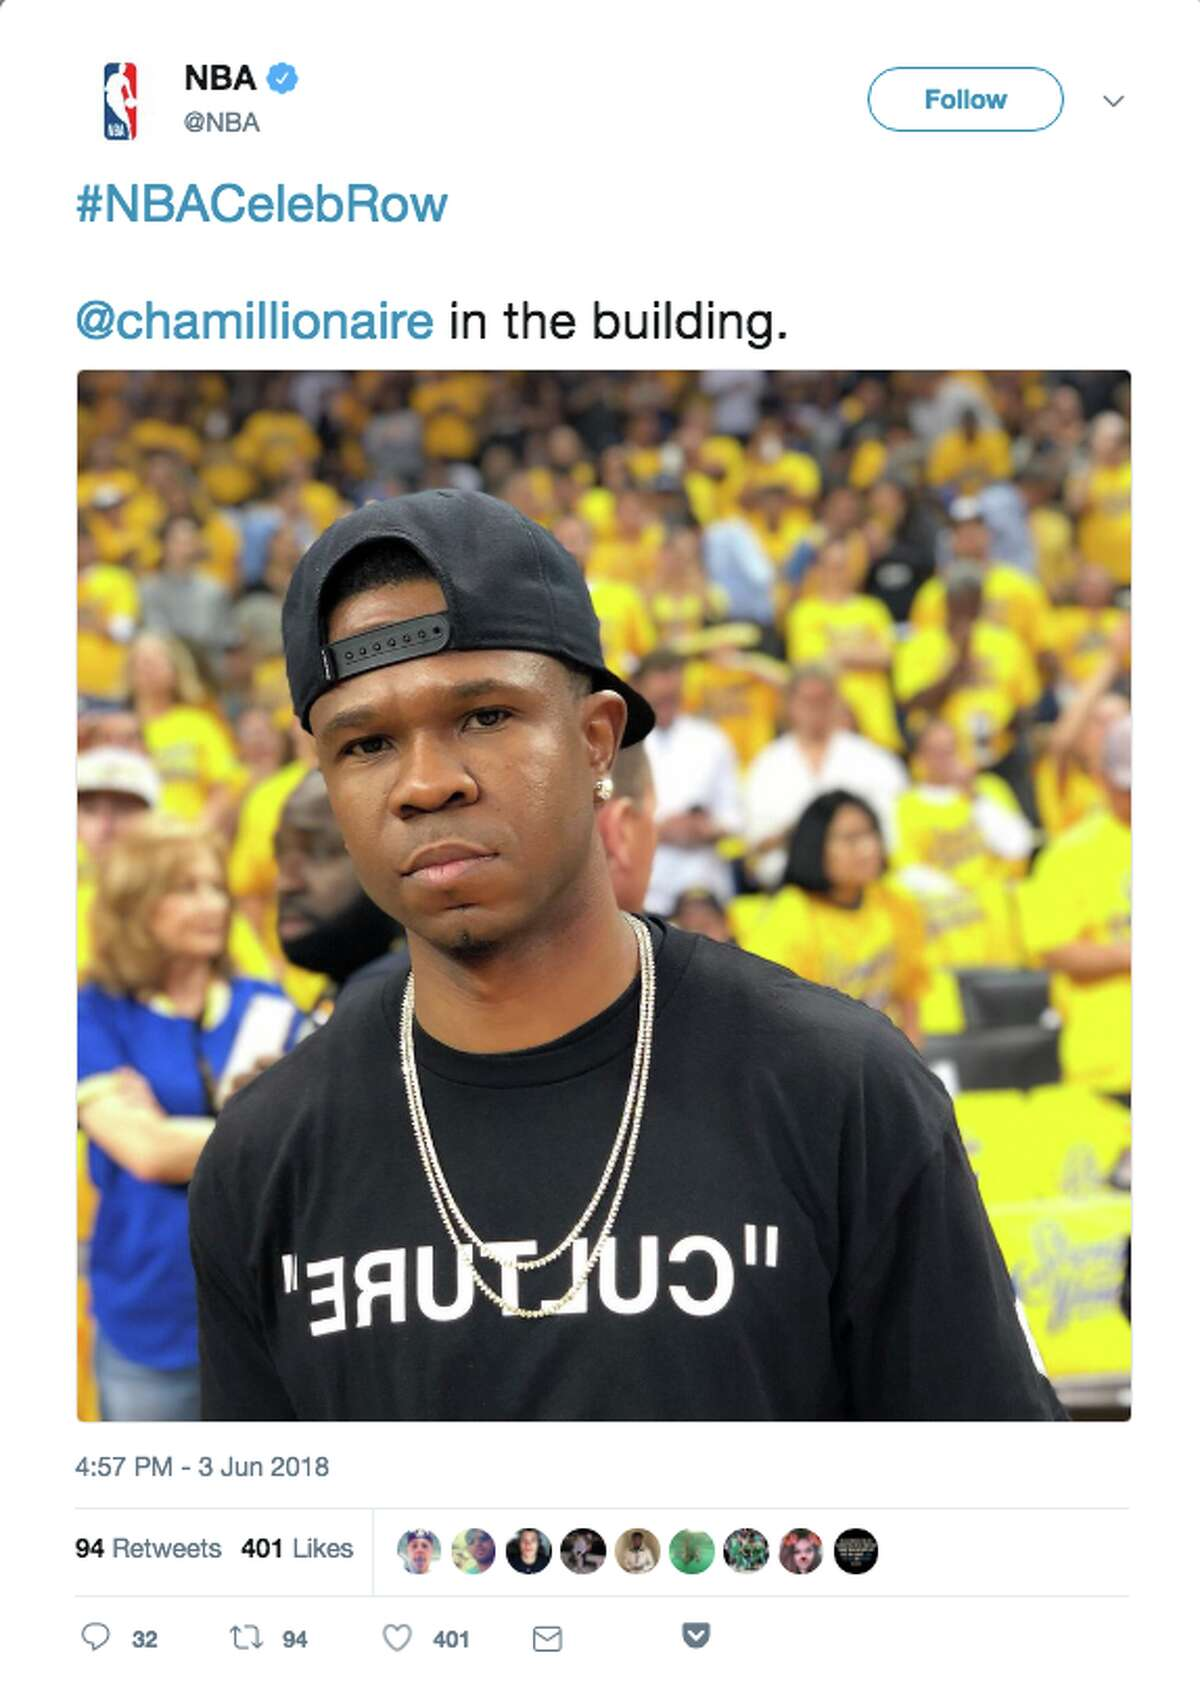 Rapper Chamillionaire turned up at Oracle Arena for Game 2.